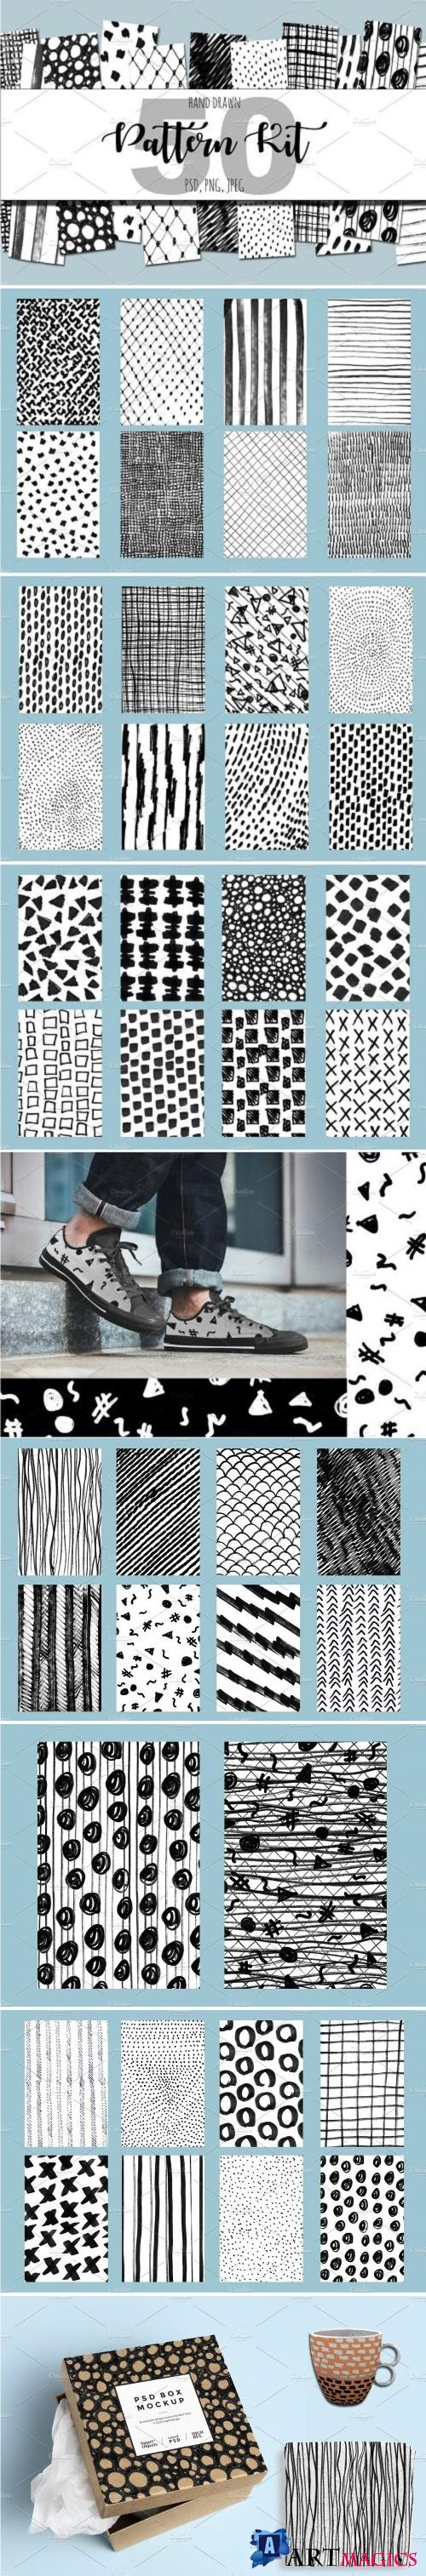 50 Hand Drawn Pattern Kit - 2068485